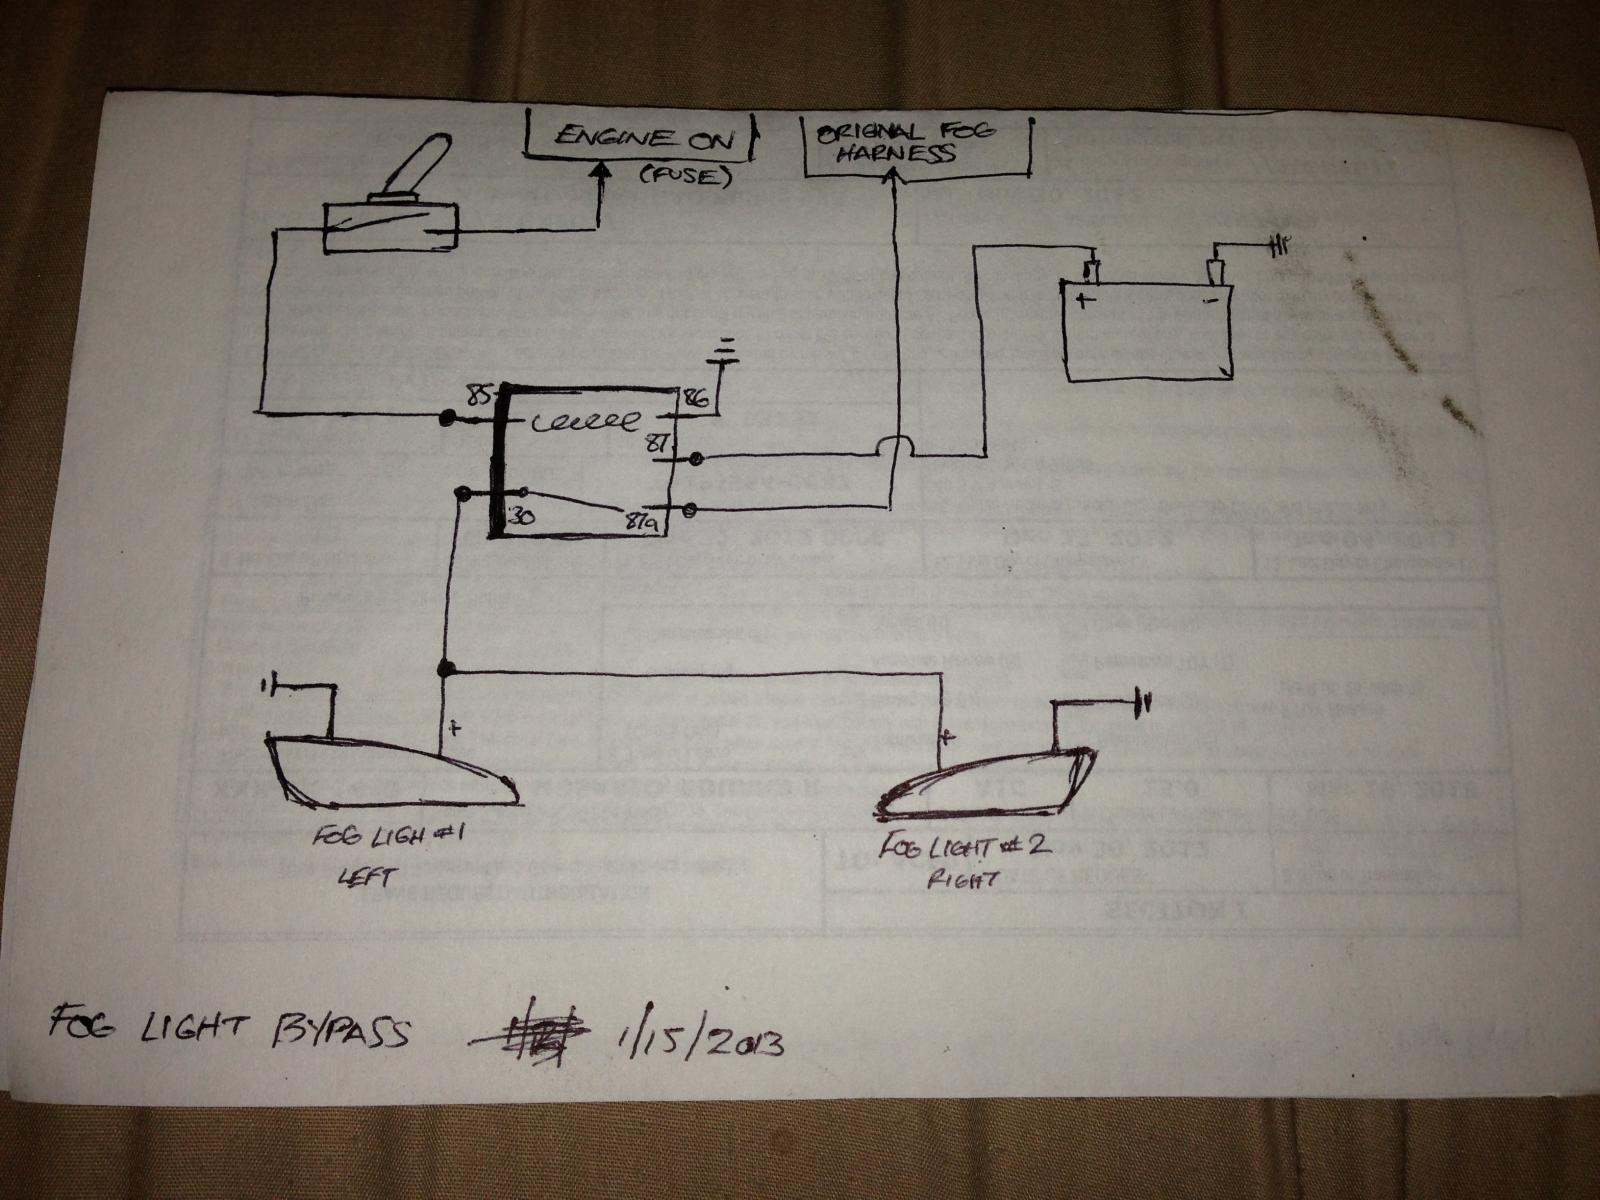 hight resolution of thread fog light wiring wiring diagram home simple wiring diagram to bypass foglights works w o